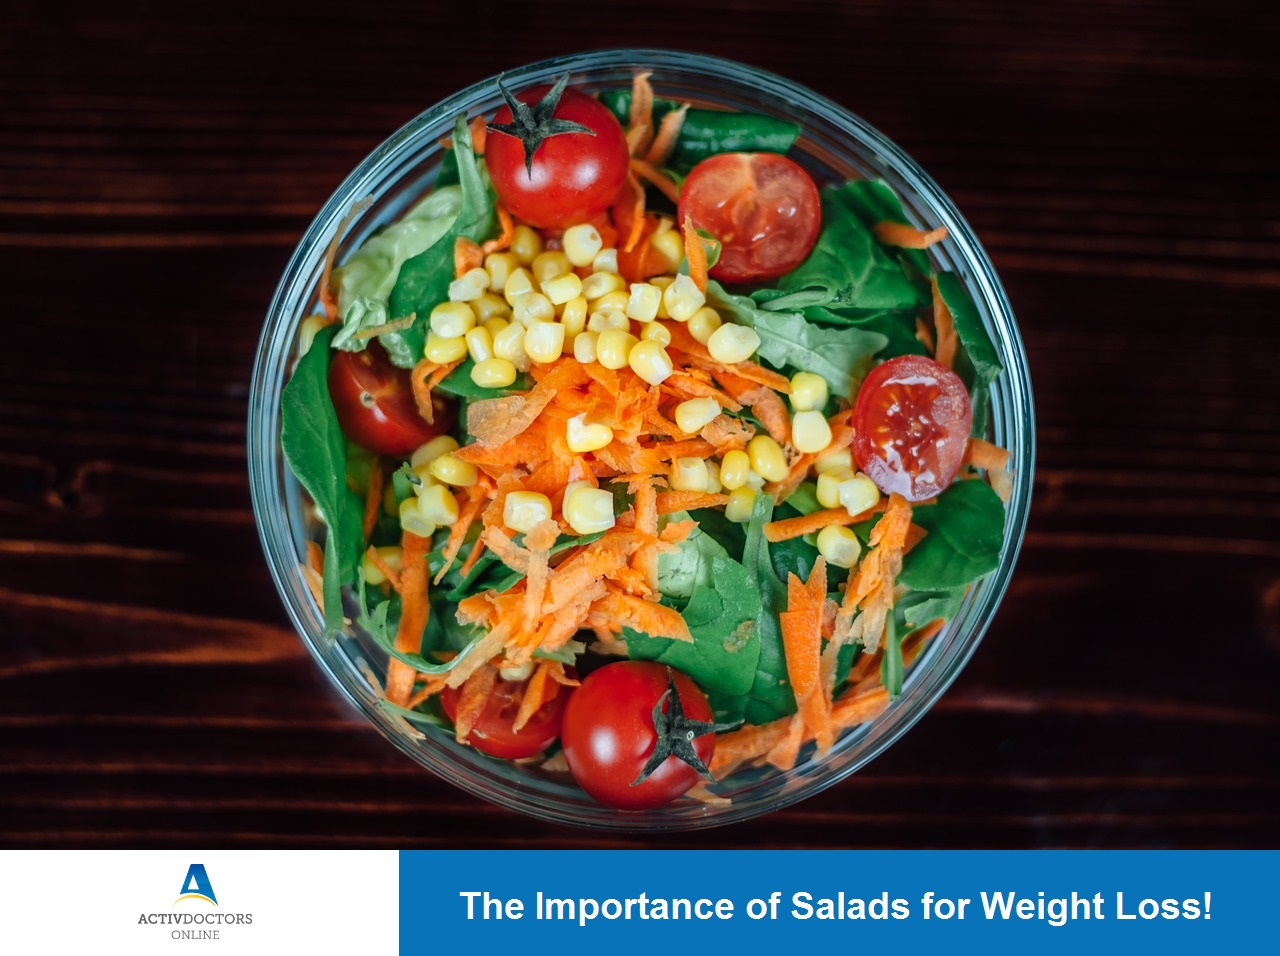 The Importance of Salads for Weight Loss!